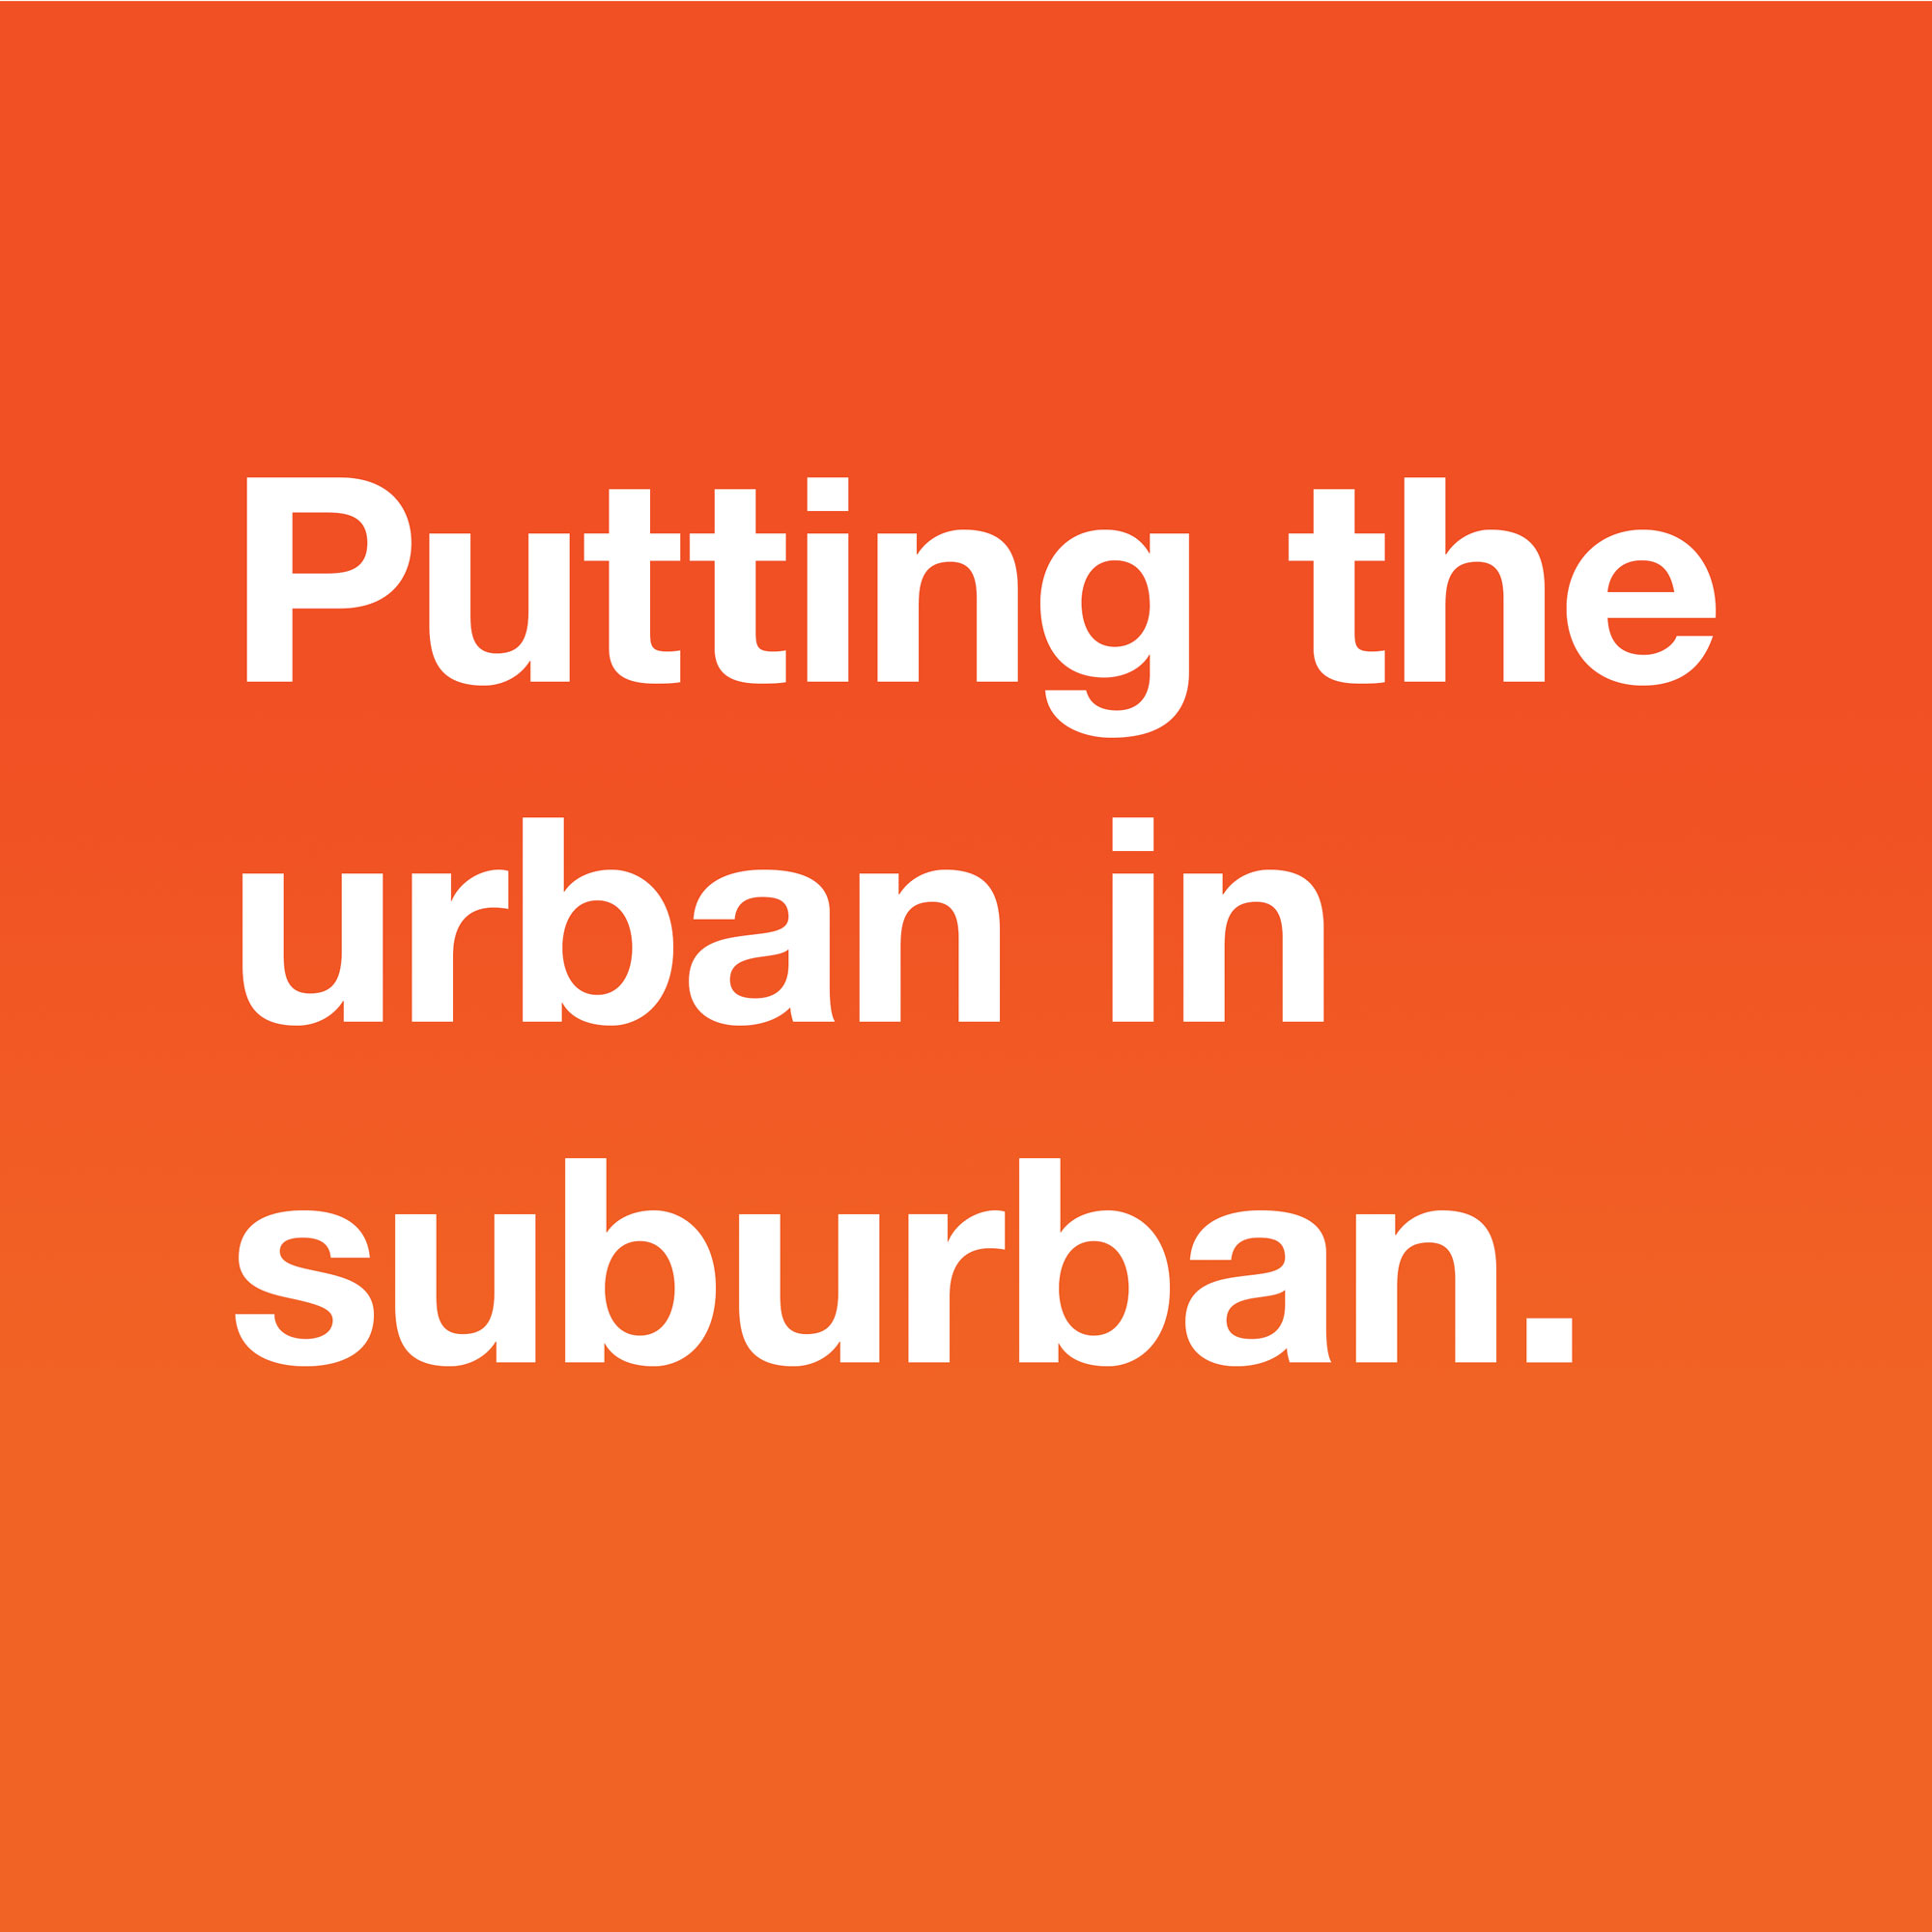 Putting the urban in suburban ad